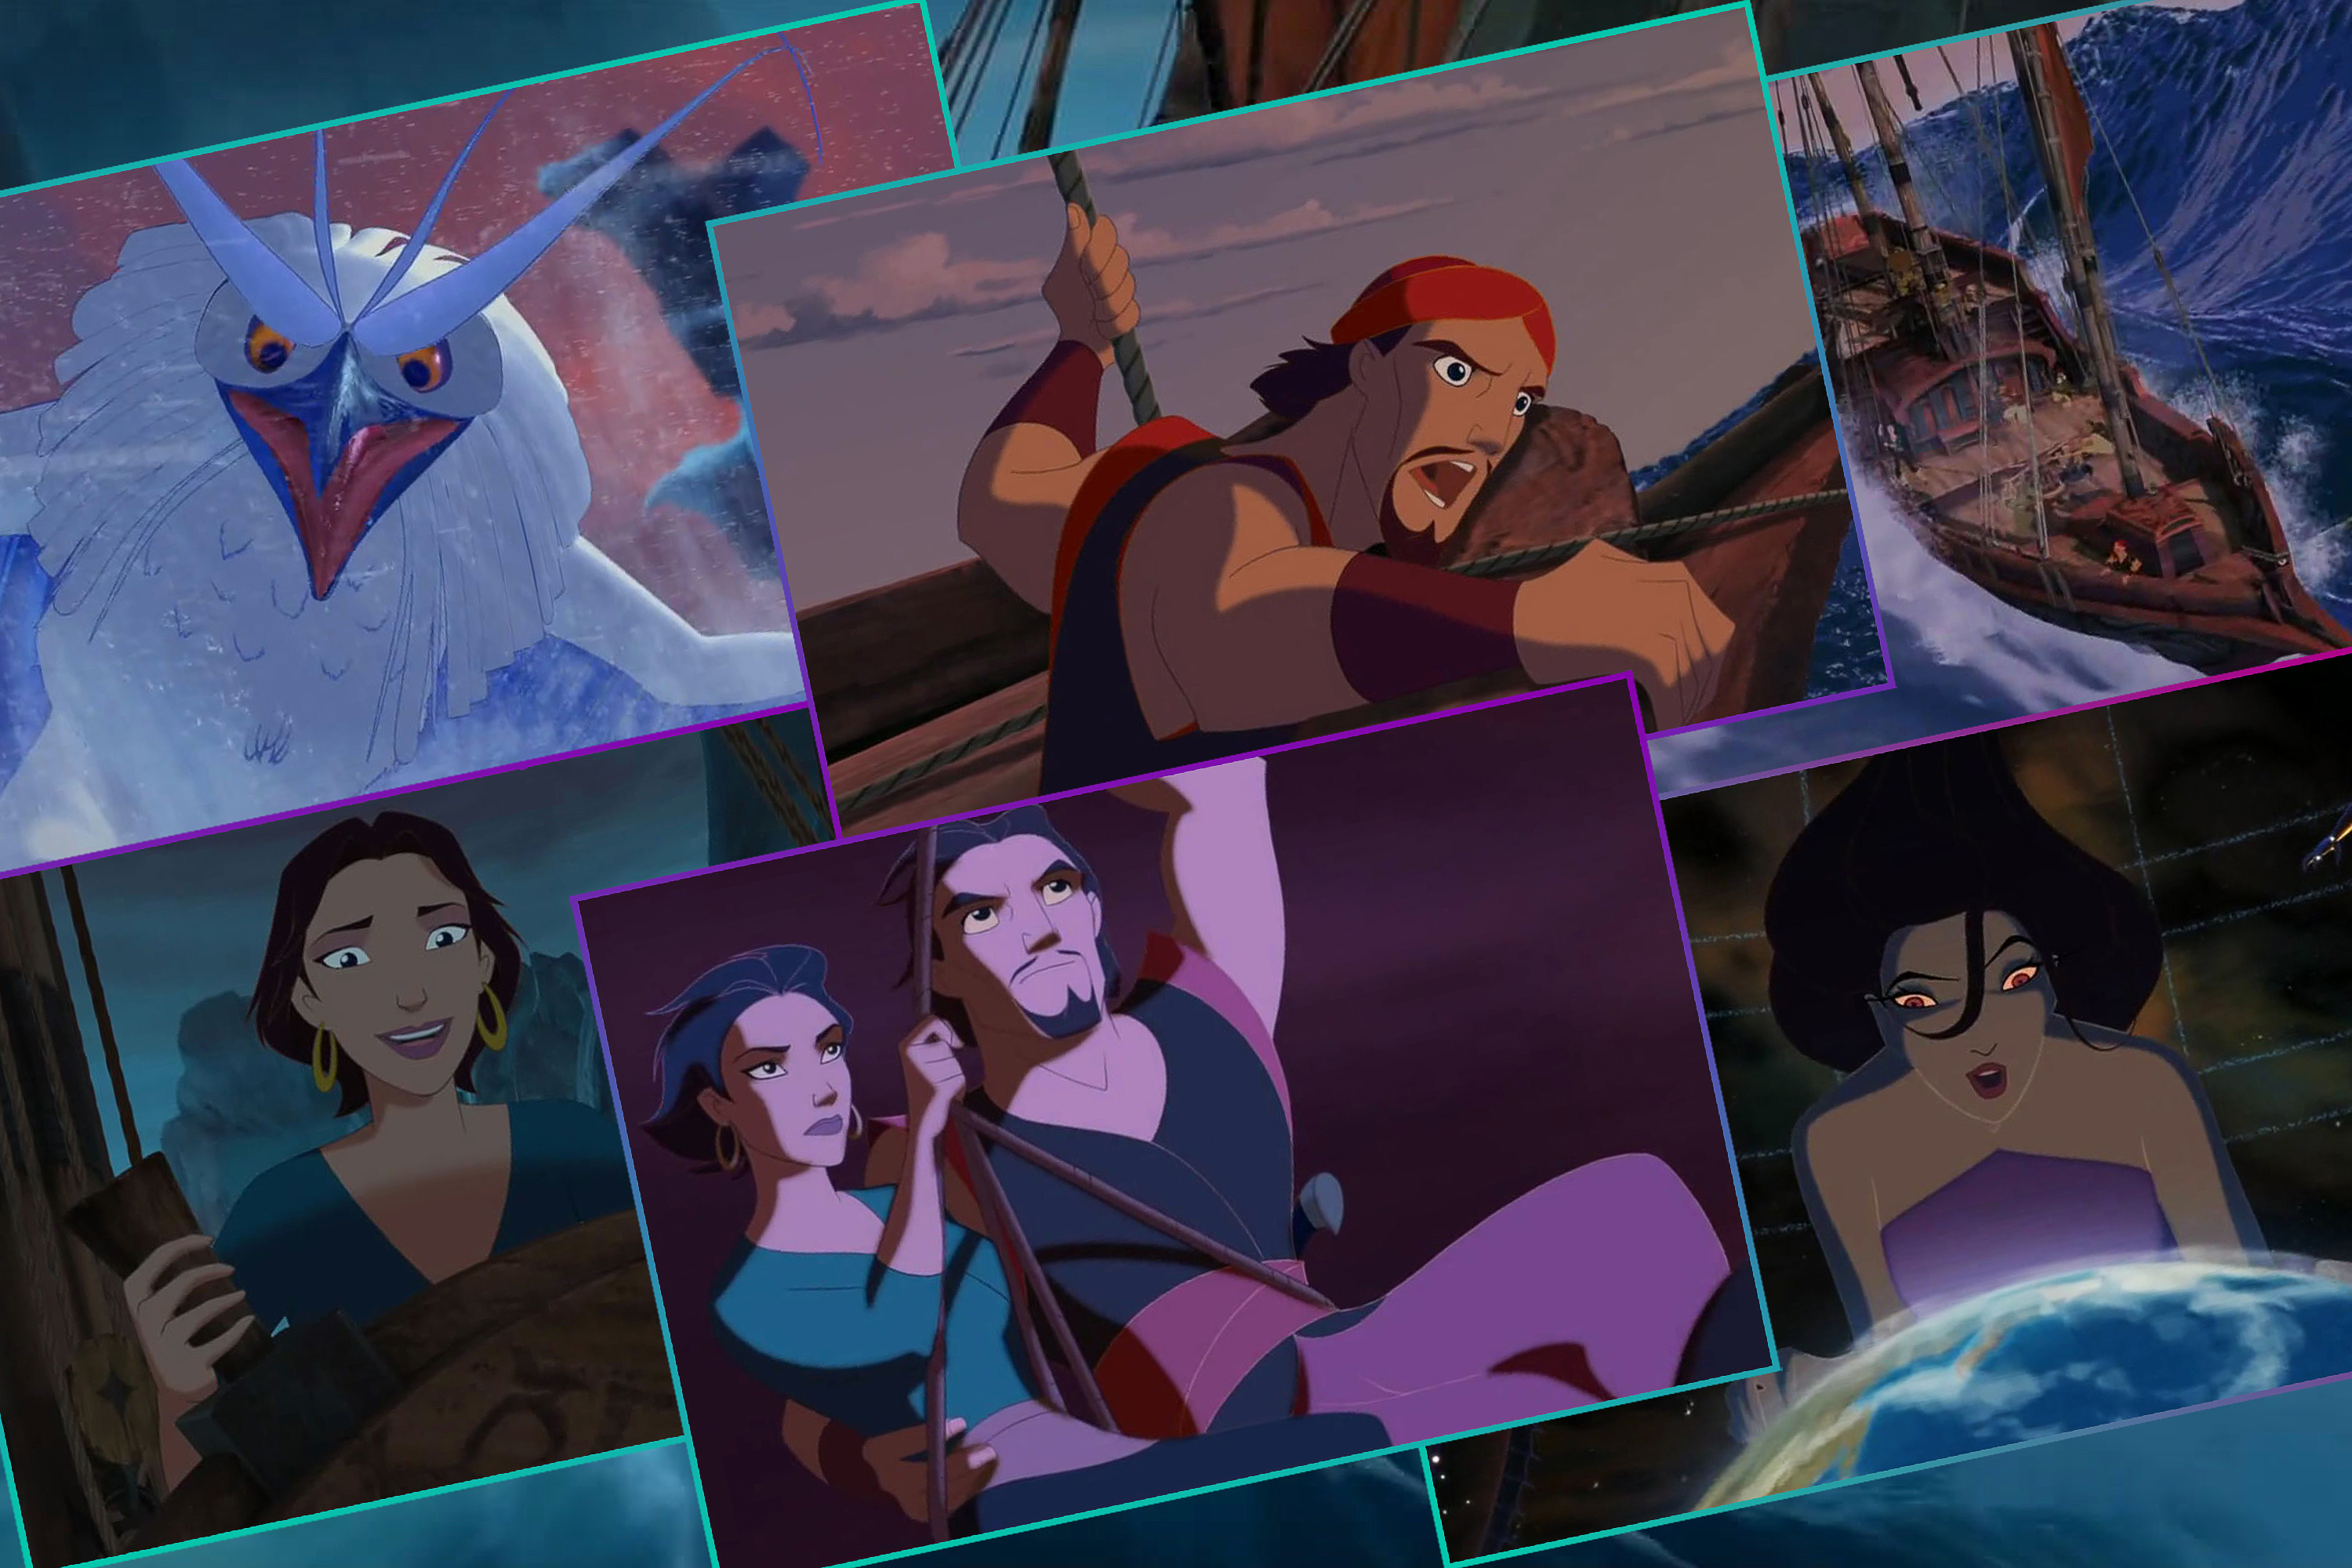 Graphic with six different images from the Sinbad animated movie